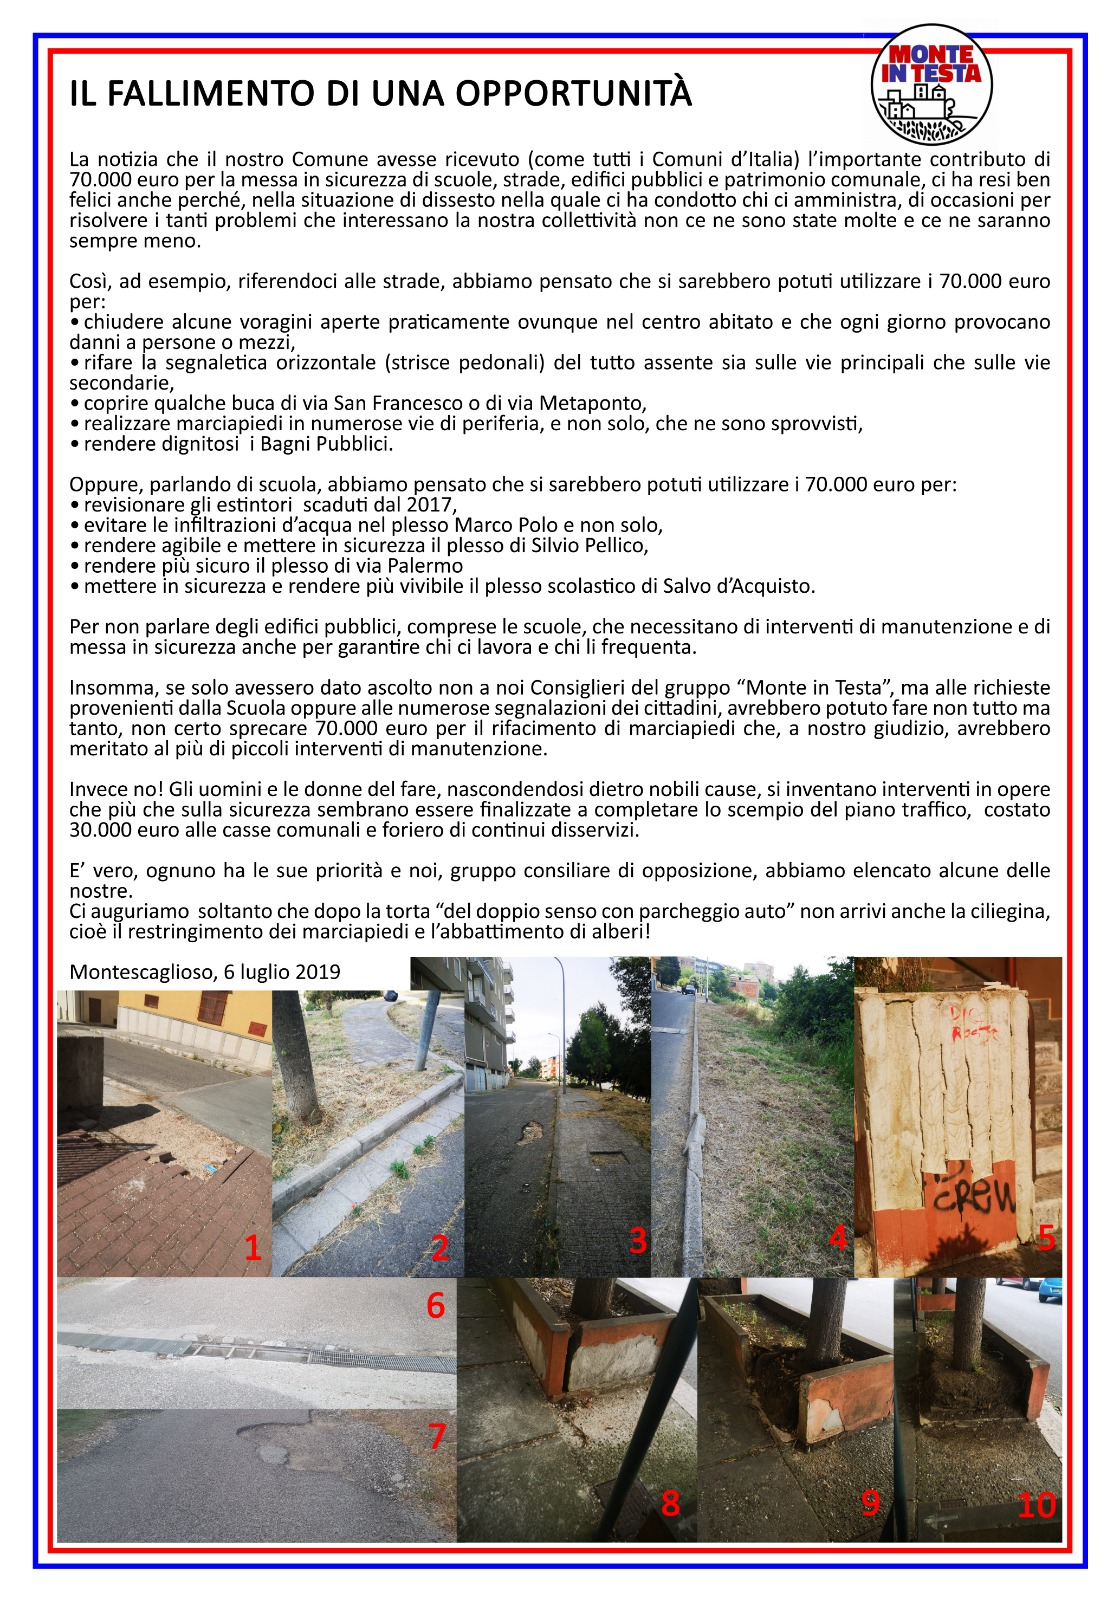 MONT.SO 06.7.2019 Manifesto MONTEINTESTA